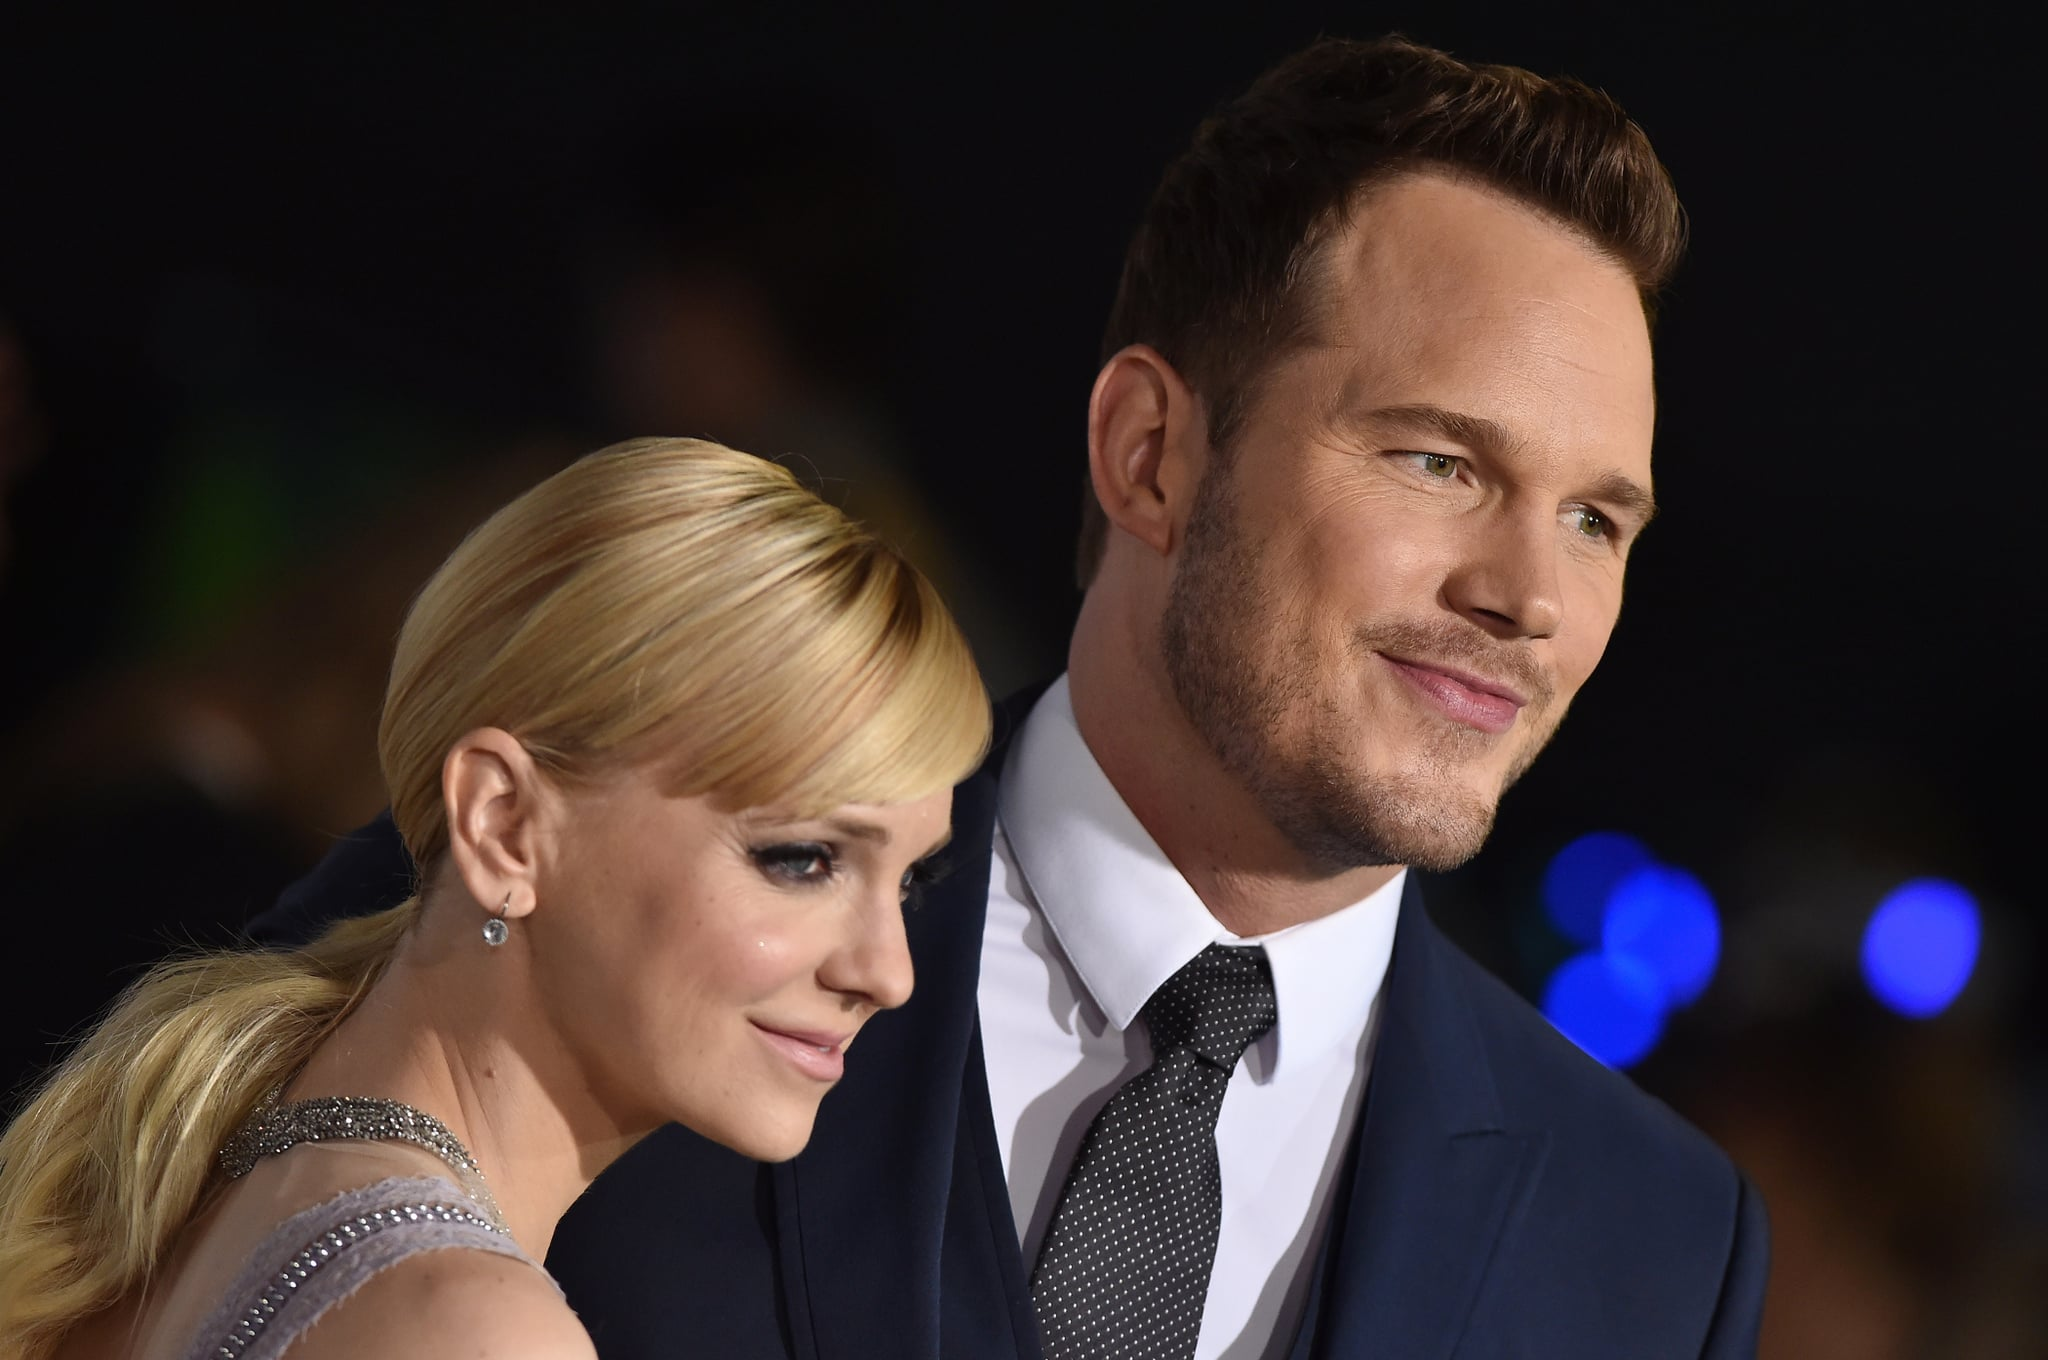 Is Fame to Blame For Anna Faris and Chris Pratt's Split? Here's What We Know